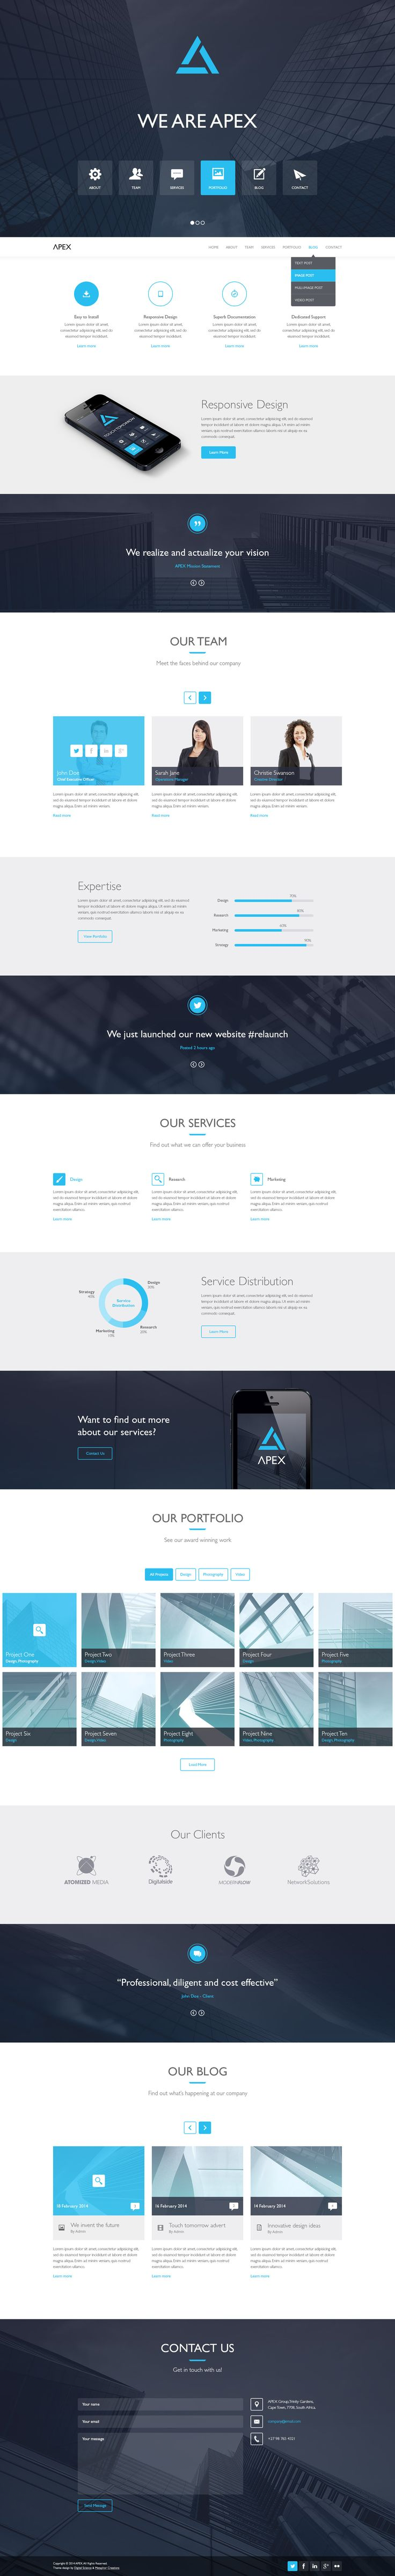 Apex Website Design - Simplistic